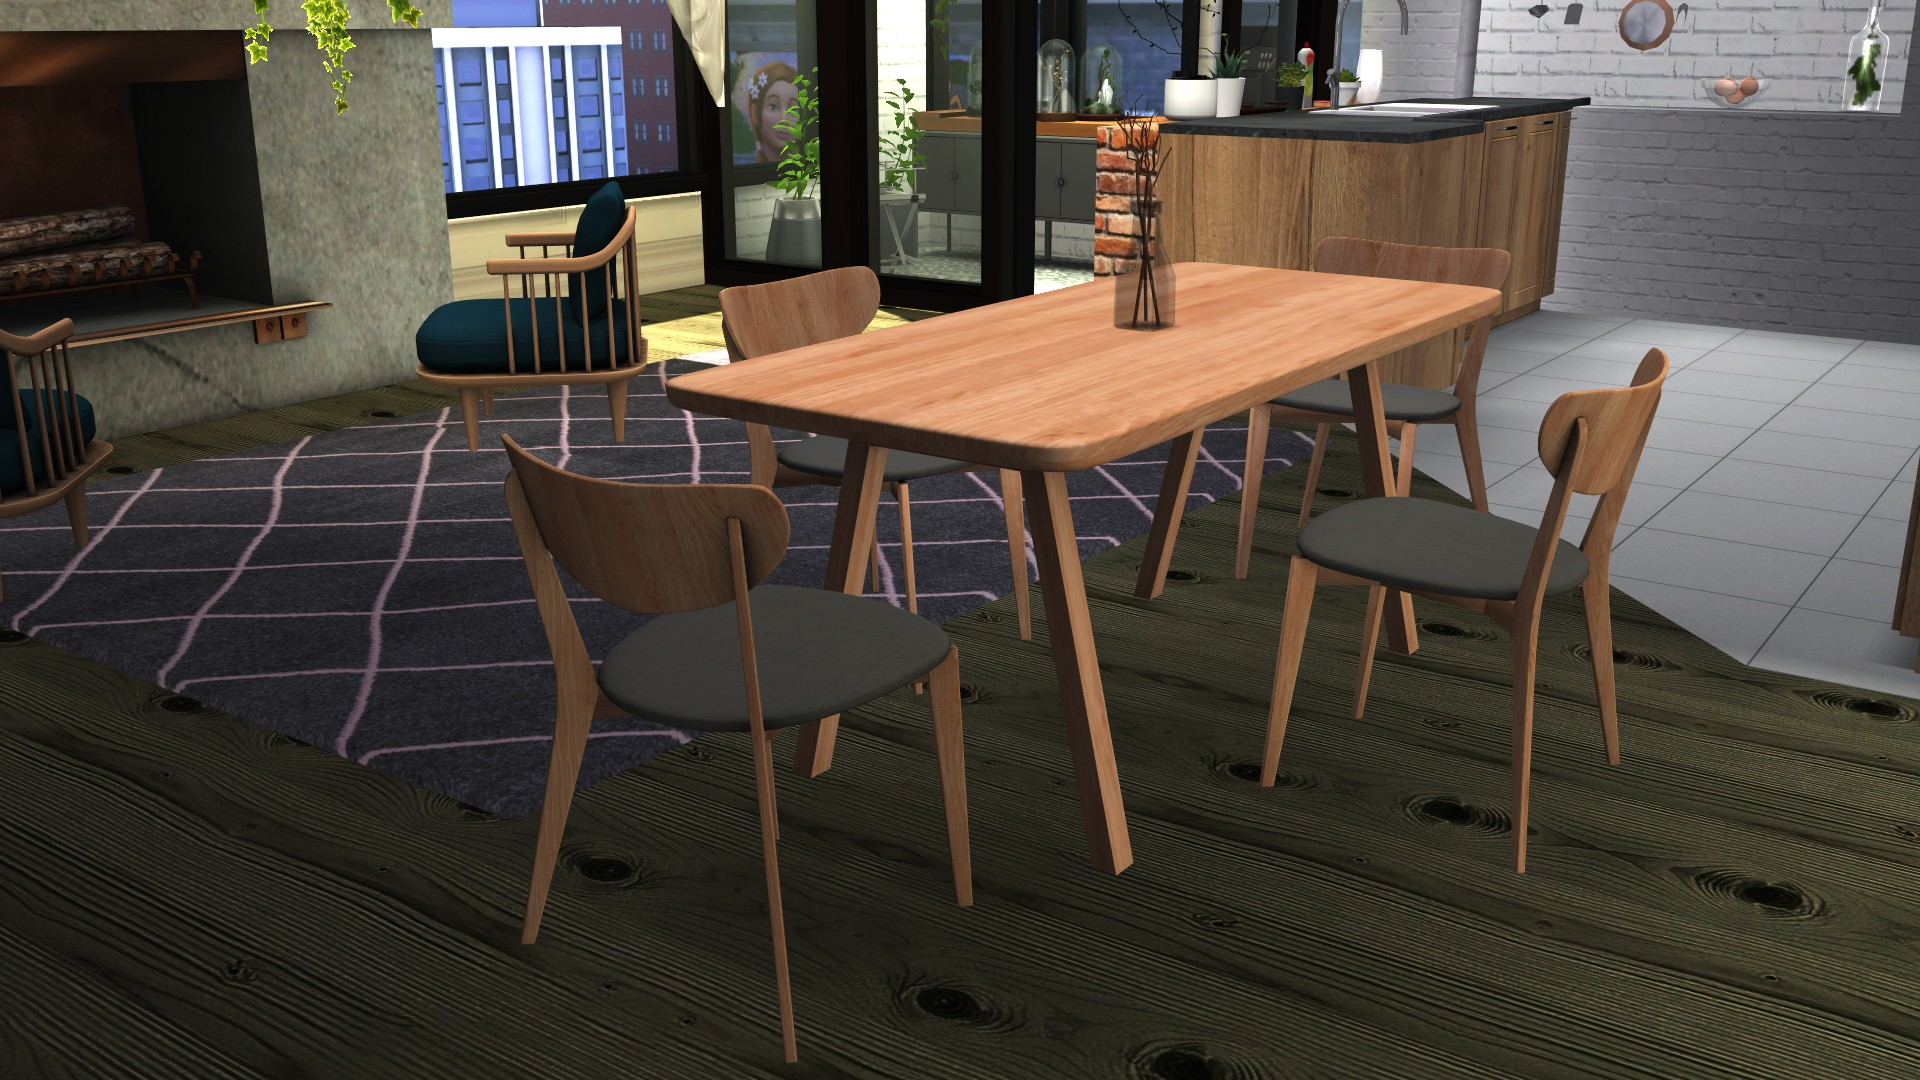 Stelvio Dining Table & Scandi Chair, high quality sims 4 cc, sunkissedlilacs, free sims 4 furniture, sims 4 custom content,